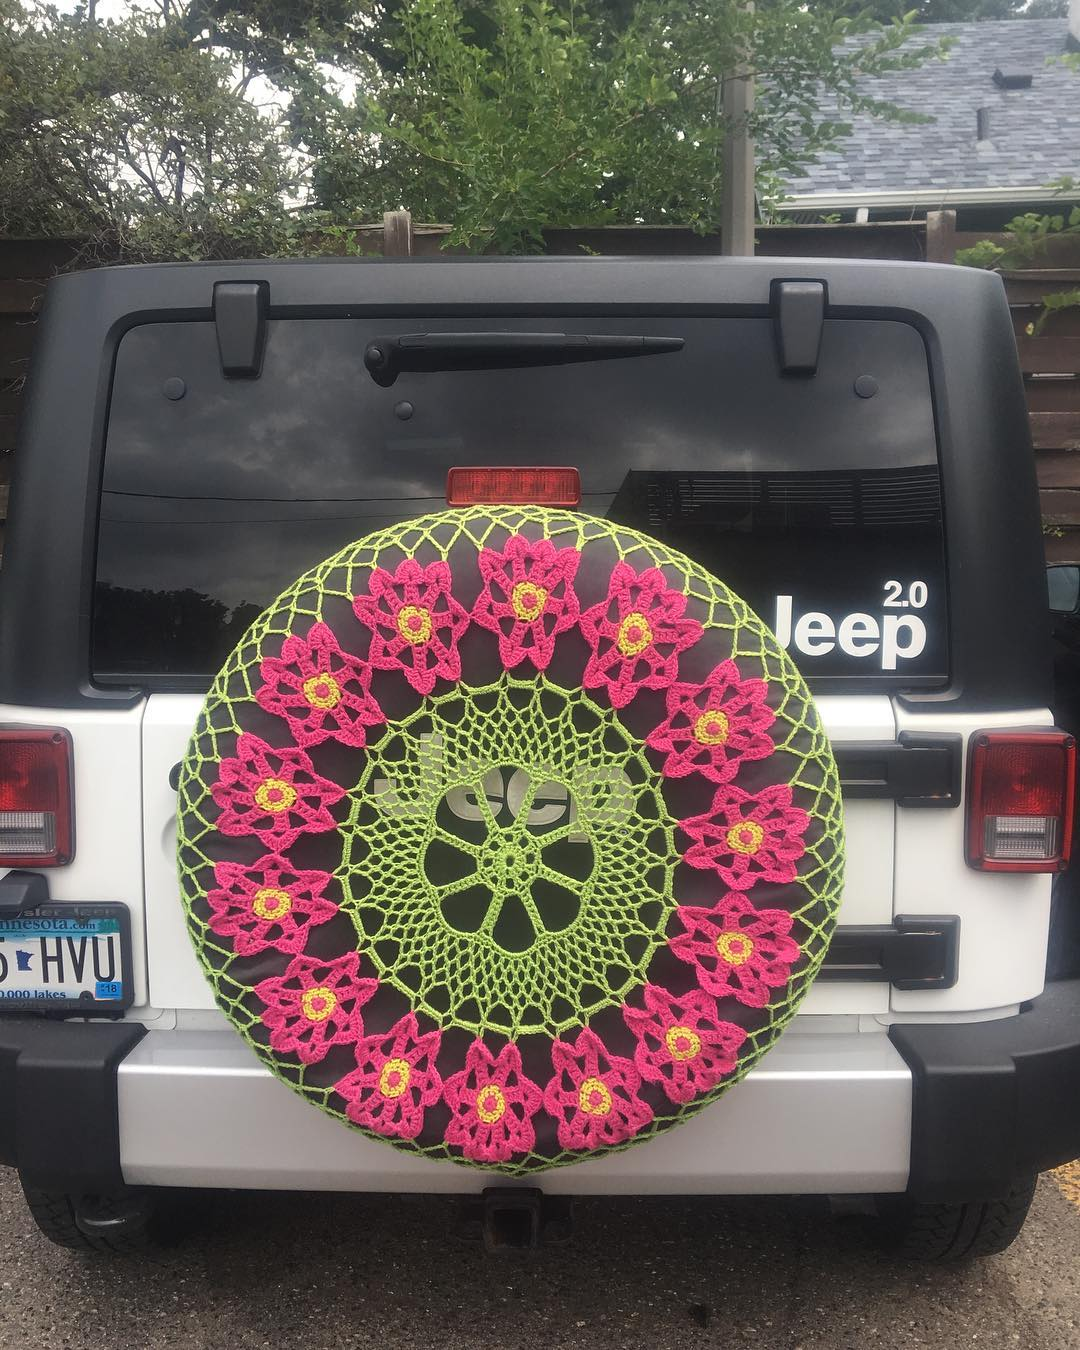 Beautiful Crochet Spare Tire Doily Spotted in Minneapolis - Lovely!